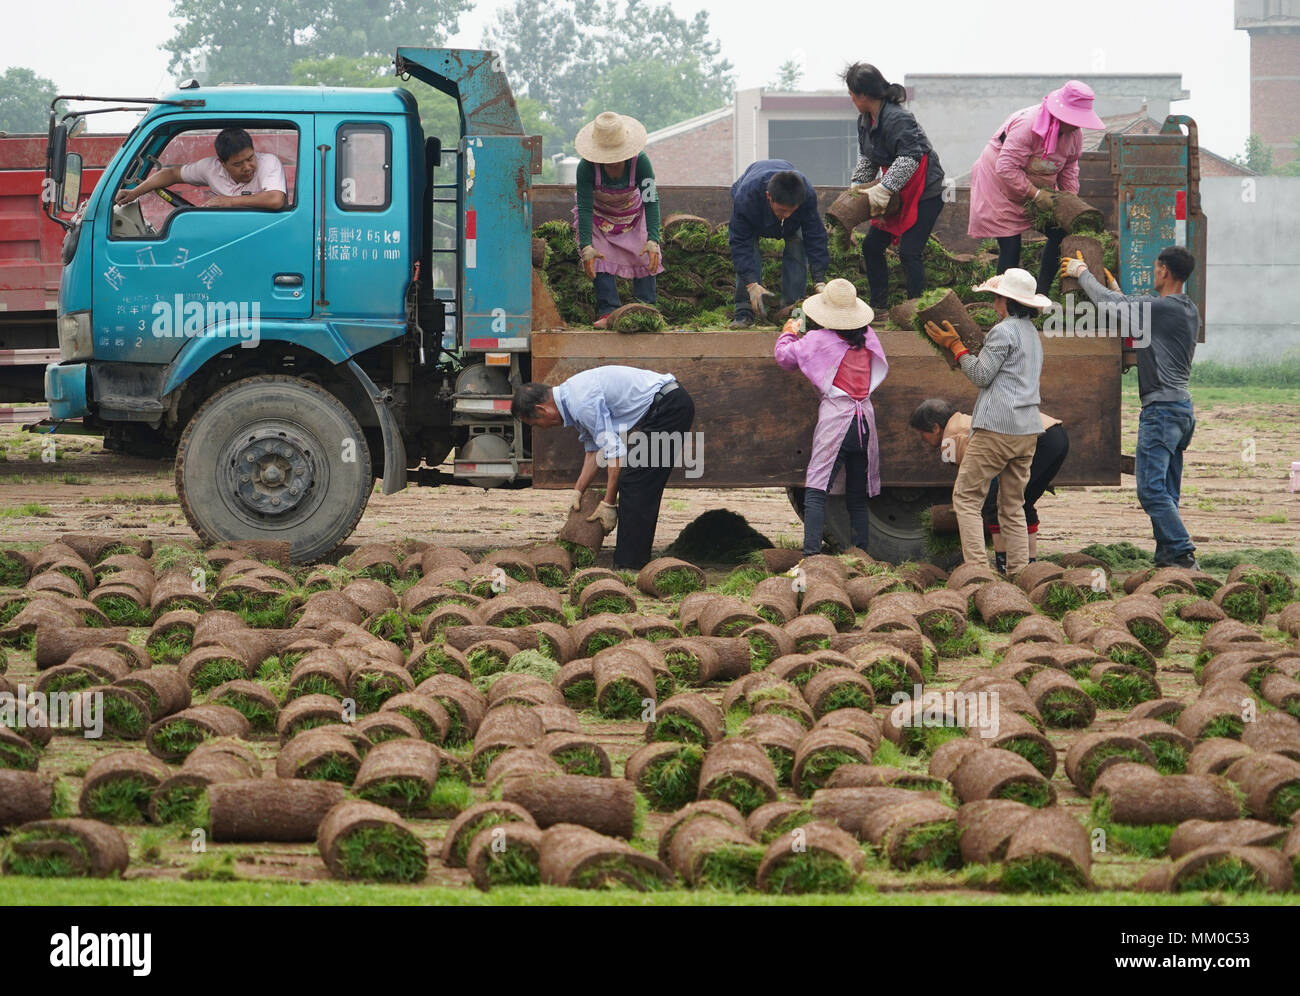 (180509) -- XI'AN, May 9, 2018 (Xinhua) -- Villagers load rolled-up turfs in Fujiang Village of Yinzhen Neighbourhood in Xi'an, northwest China's Shaanxi Province, May 9, 2018. The need for turfs during China's urbanization process has driven farmers in Yinzhen Neighbourhood to invest in the turf business. (Xinhua/Shao Rui) (lmm) - Stock Image